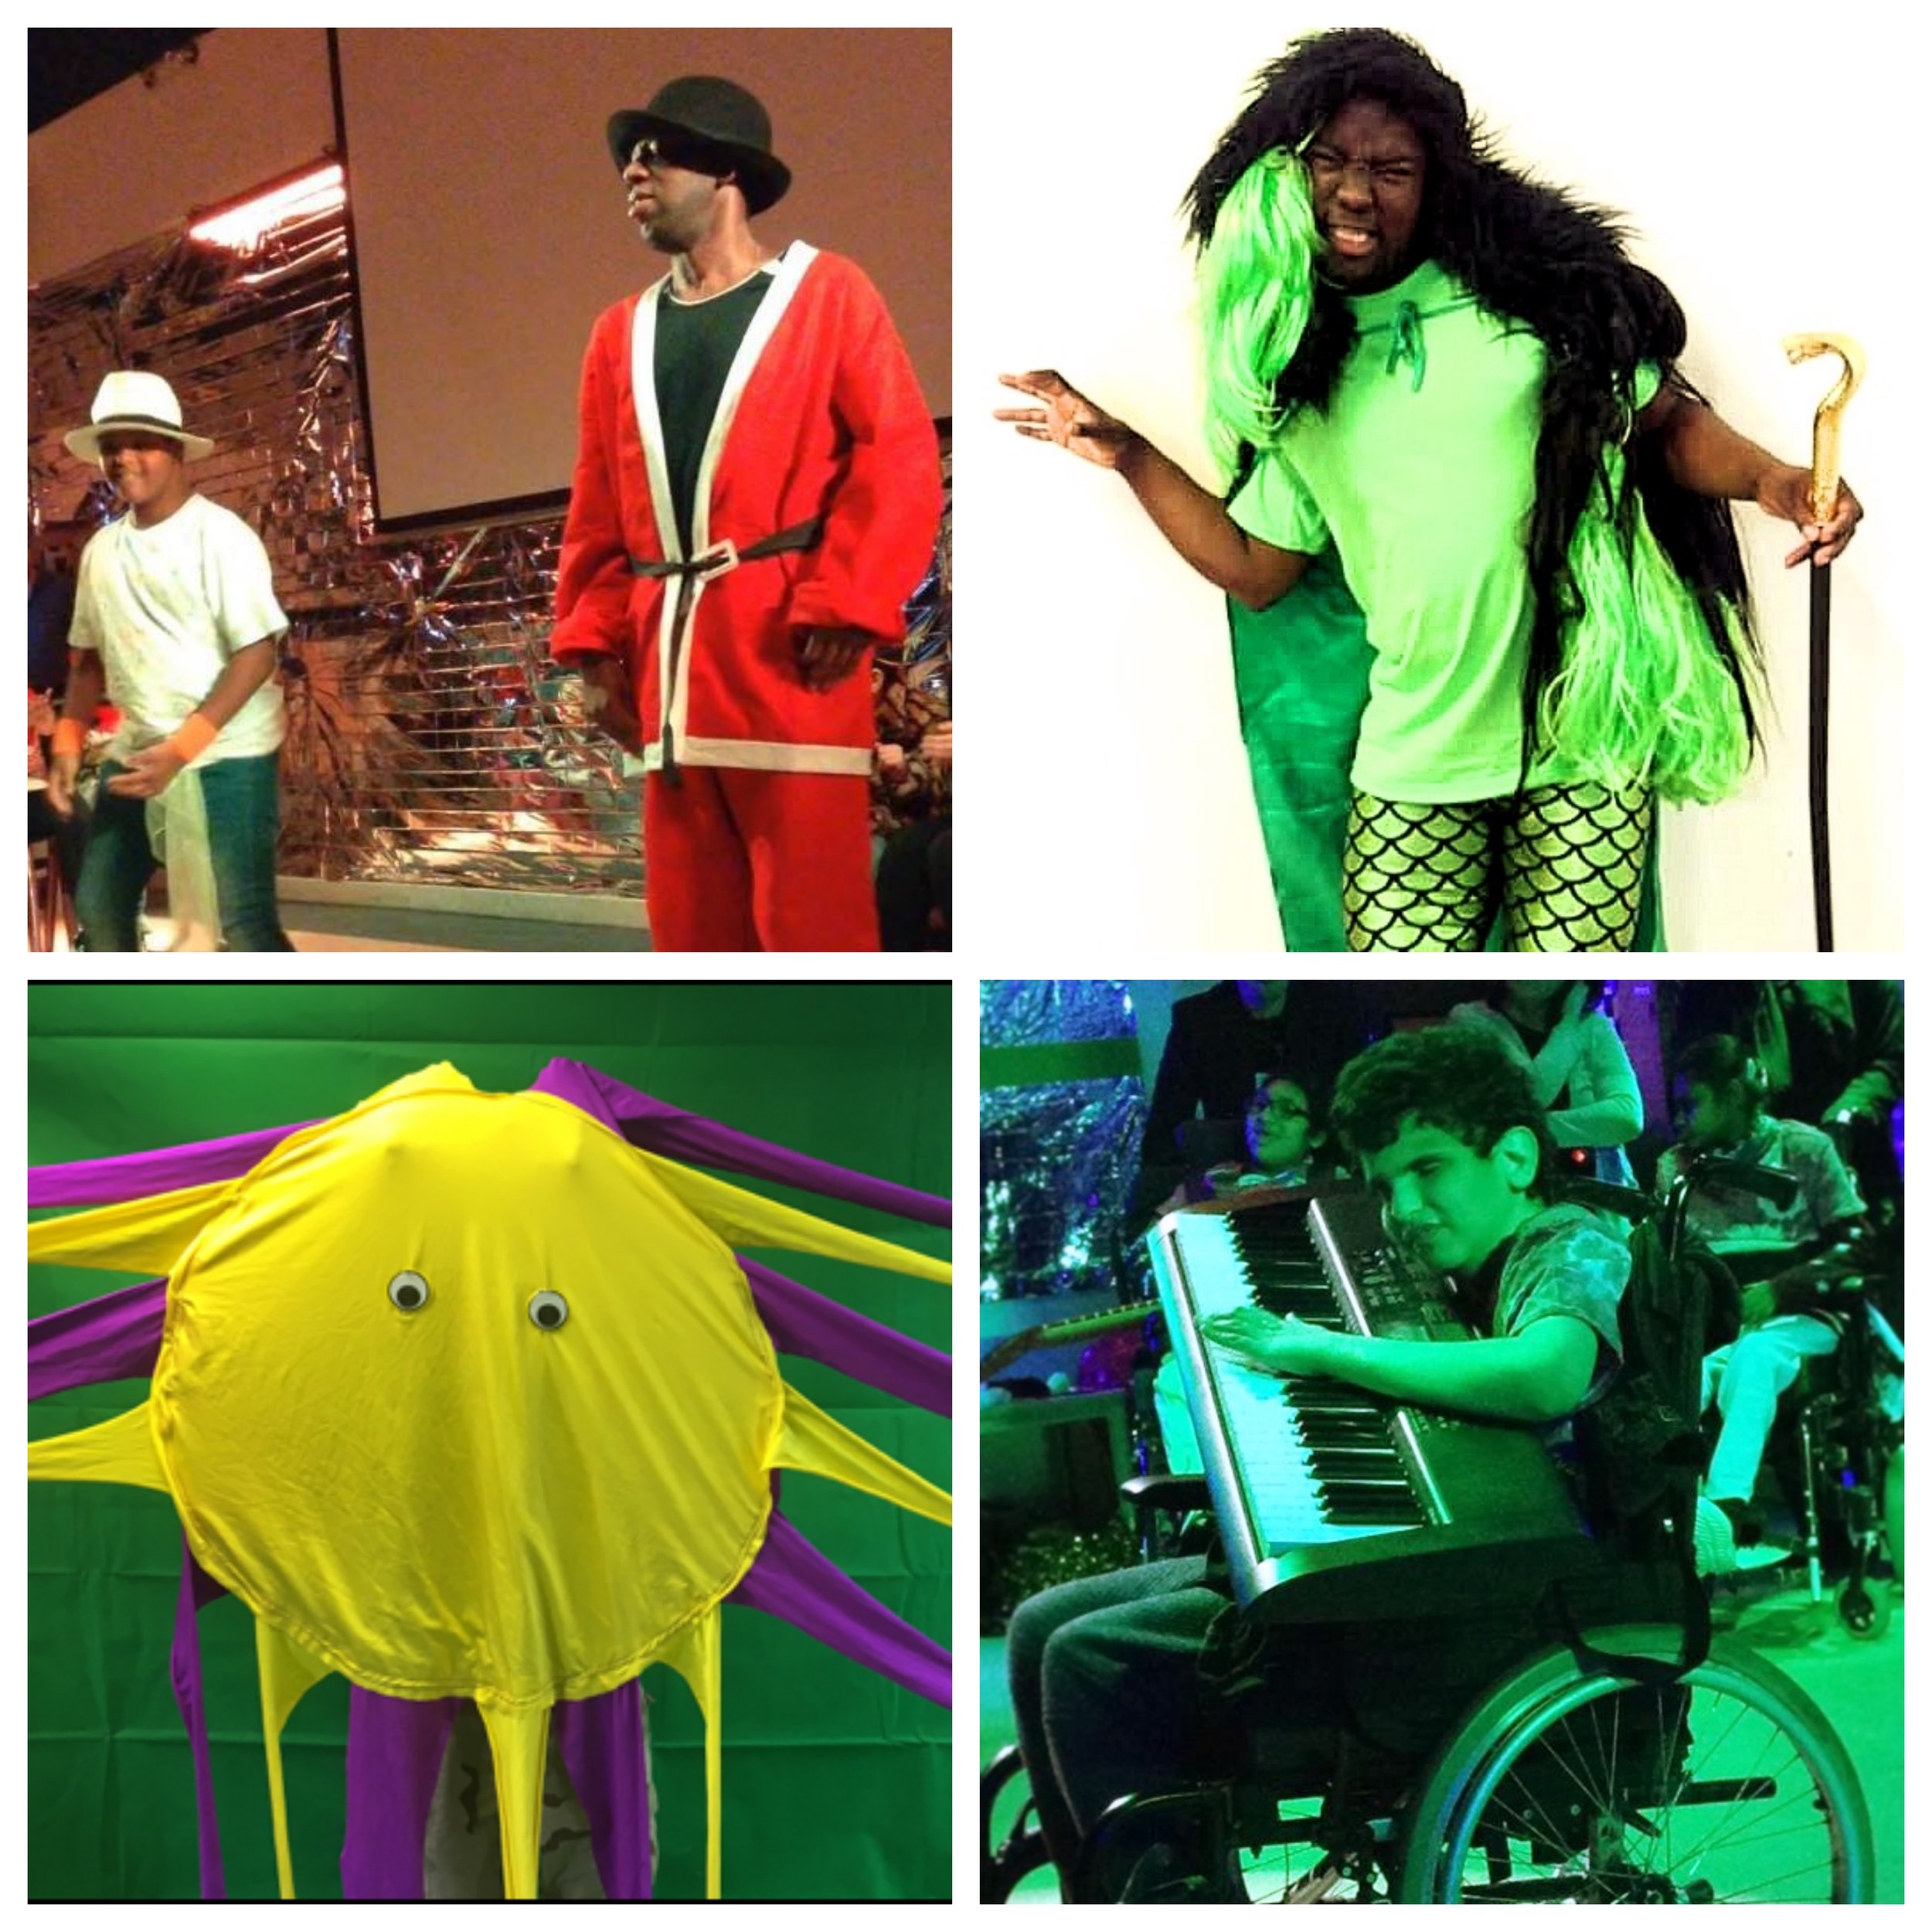 [description] A collage of 4 pictures. Top Left: Delson as Santa and a student from Jack Tizard School performing a duet, Top Right: Francis dressed as the Grinch in shiny green mermaid leggings, a long shaggy green and black wig and a cane pulling a monster face, Bottom Left: The Octa Decca Pus prop/character which is a lycra yellow face with googley eyes and purple and yellow strechy legs, Bottom Right: A student from Jack Tizard performing as a member of 'The Who' playing a huge keyboard close to his face in his wheelchair lit beautifully with green lights.